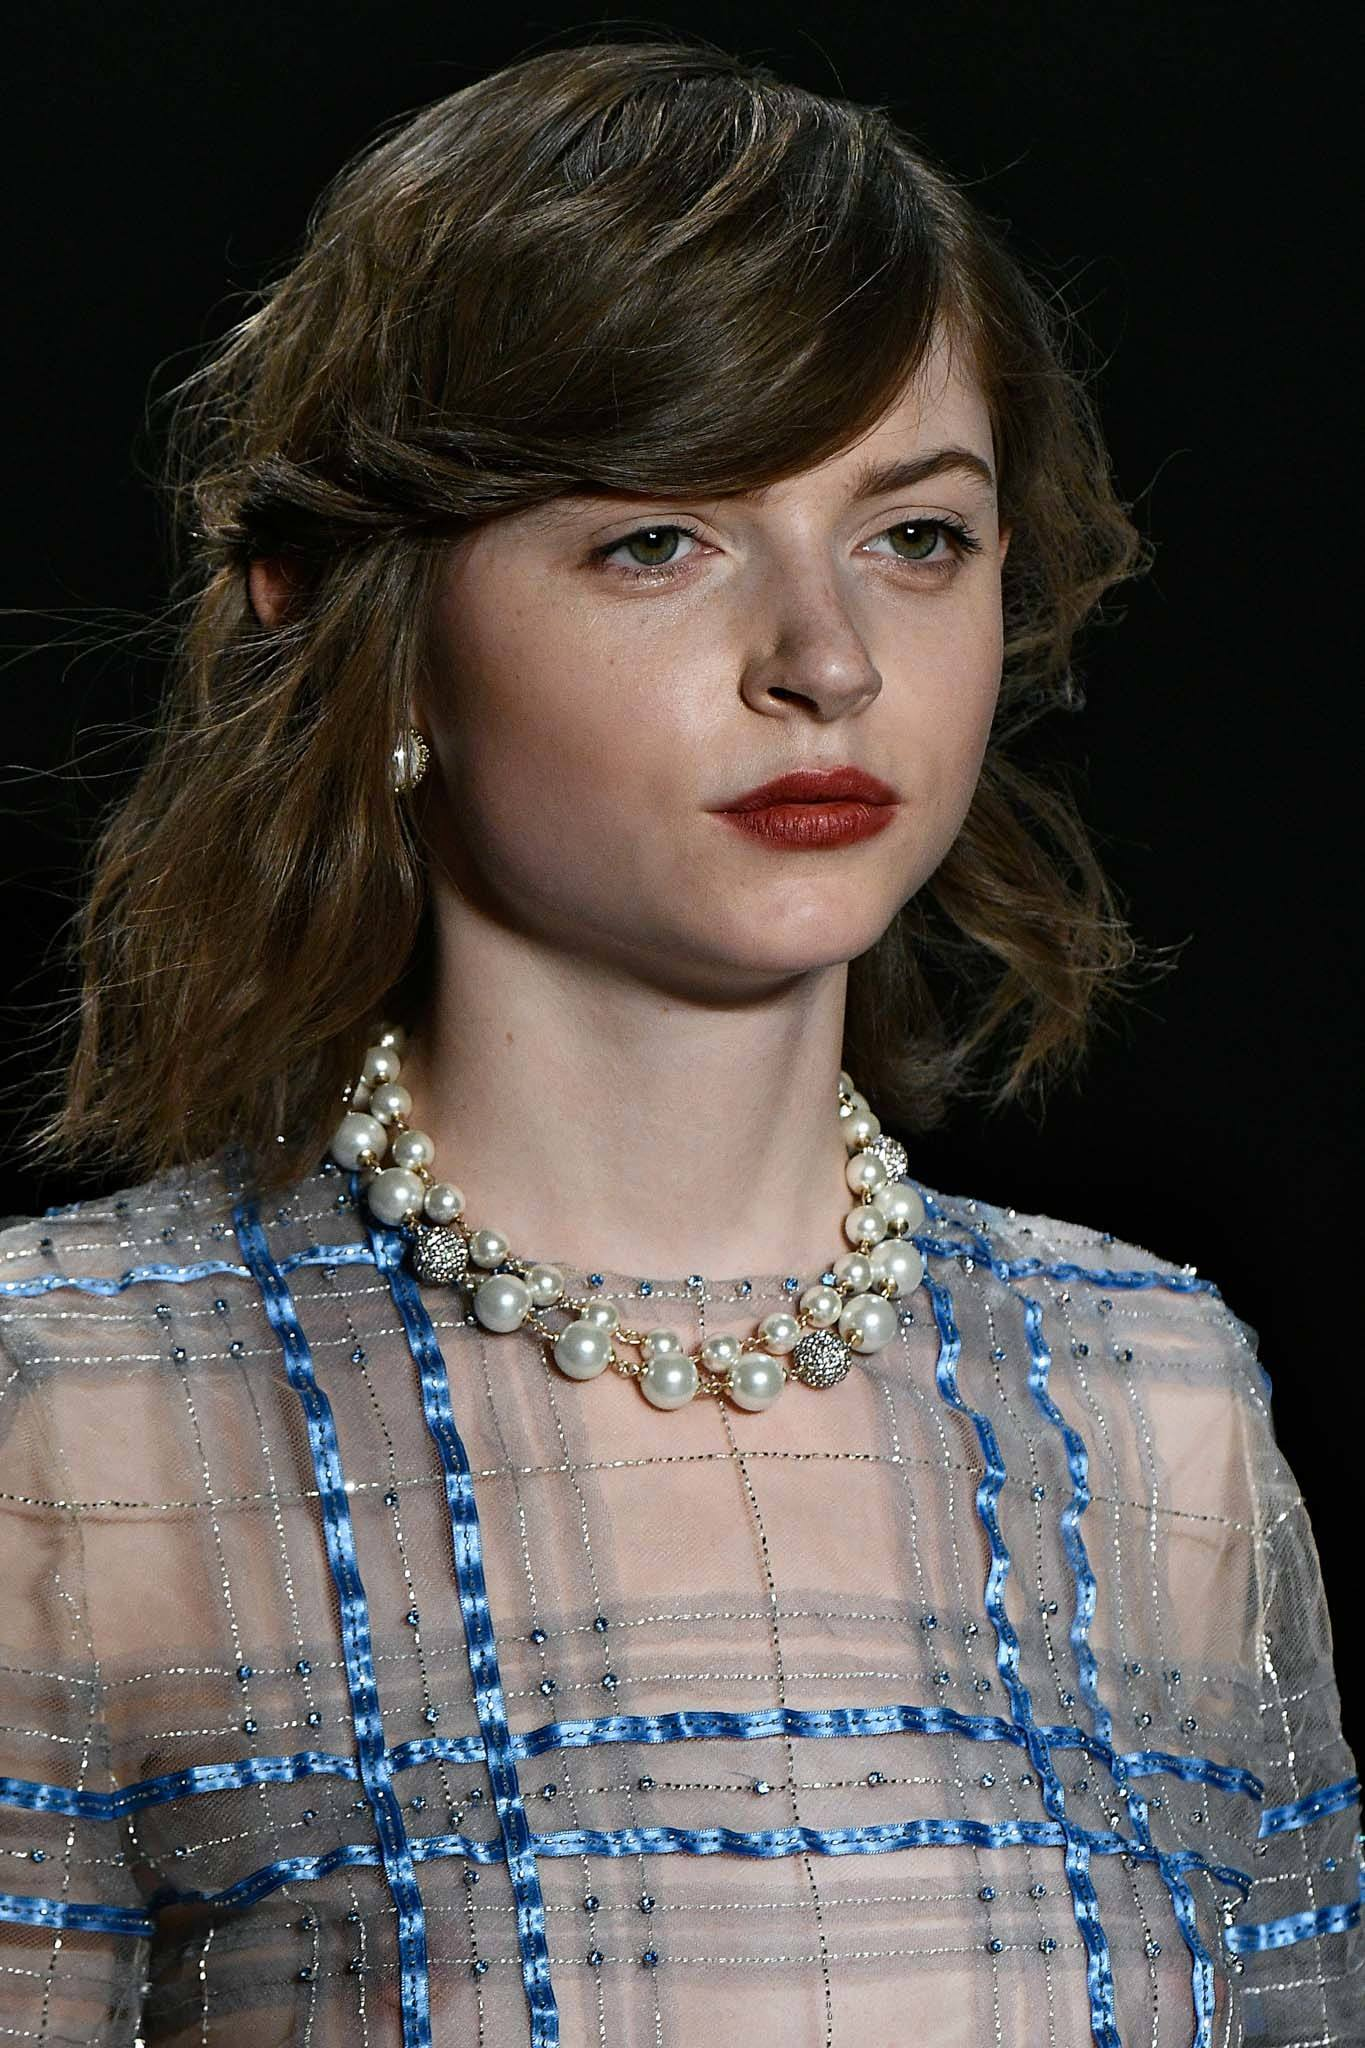 young model with side swept hairstyle with mussed-up texture.